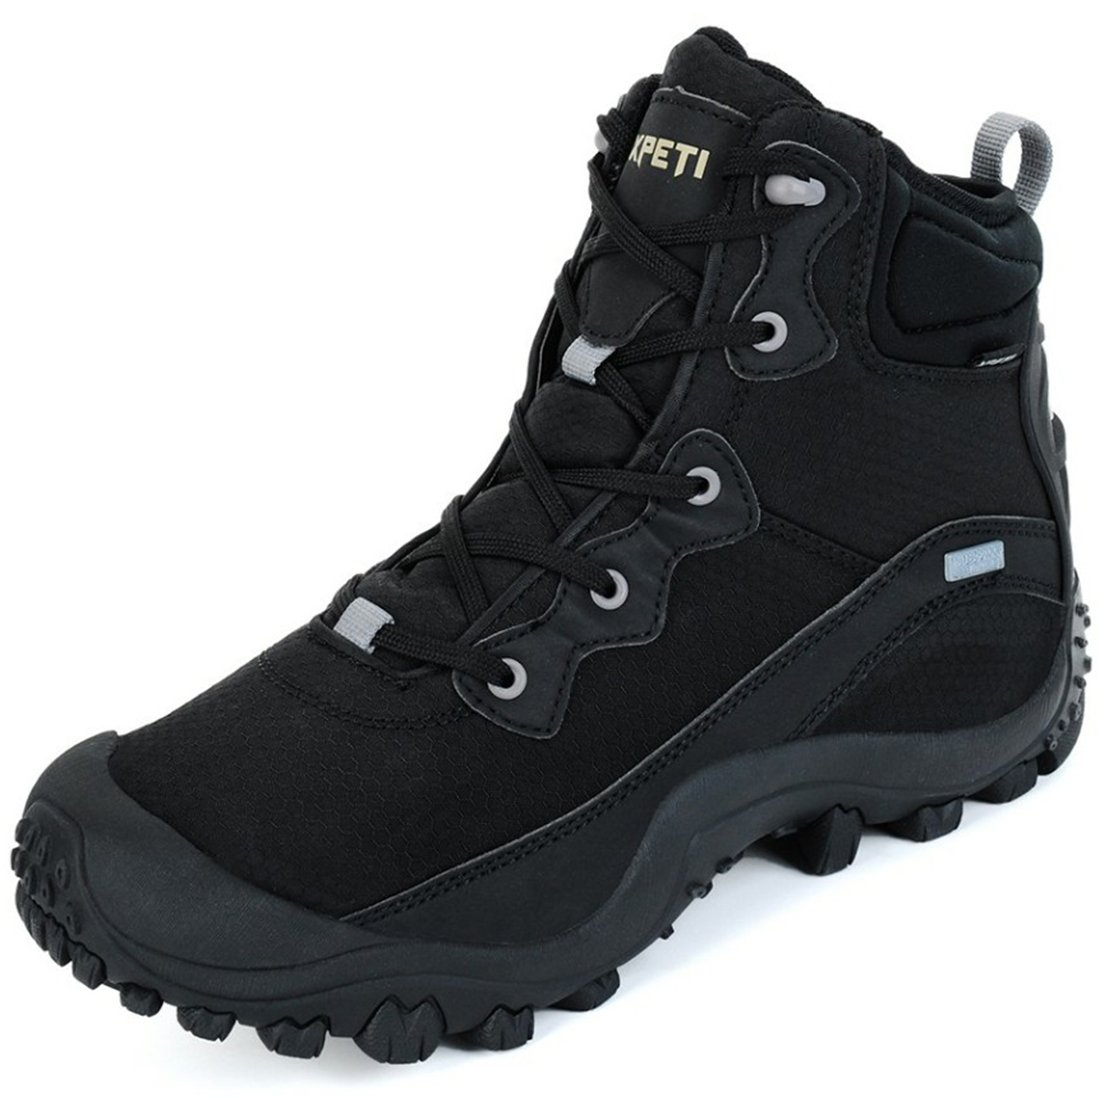 7573f6ddcbb XPETI Dimo Men s Waterproof Hiking Boots  Amazon.co.uk  Shoes   Bags